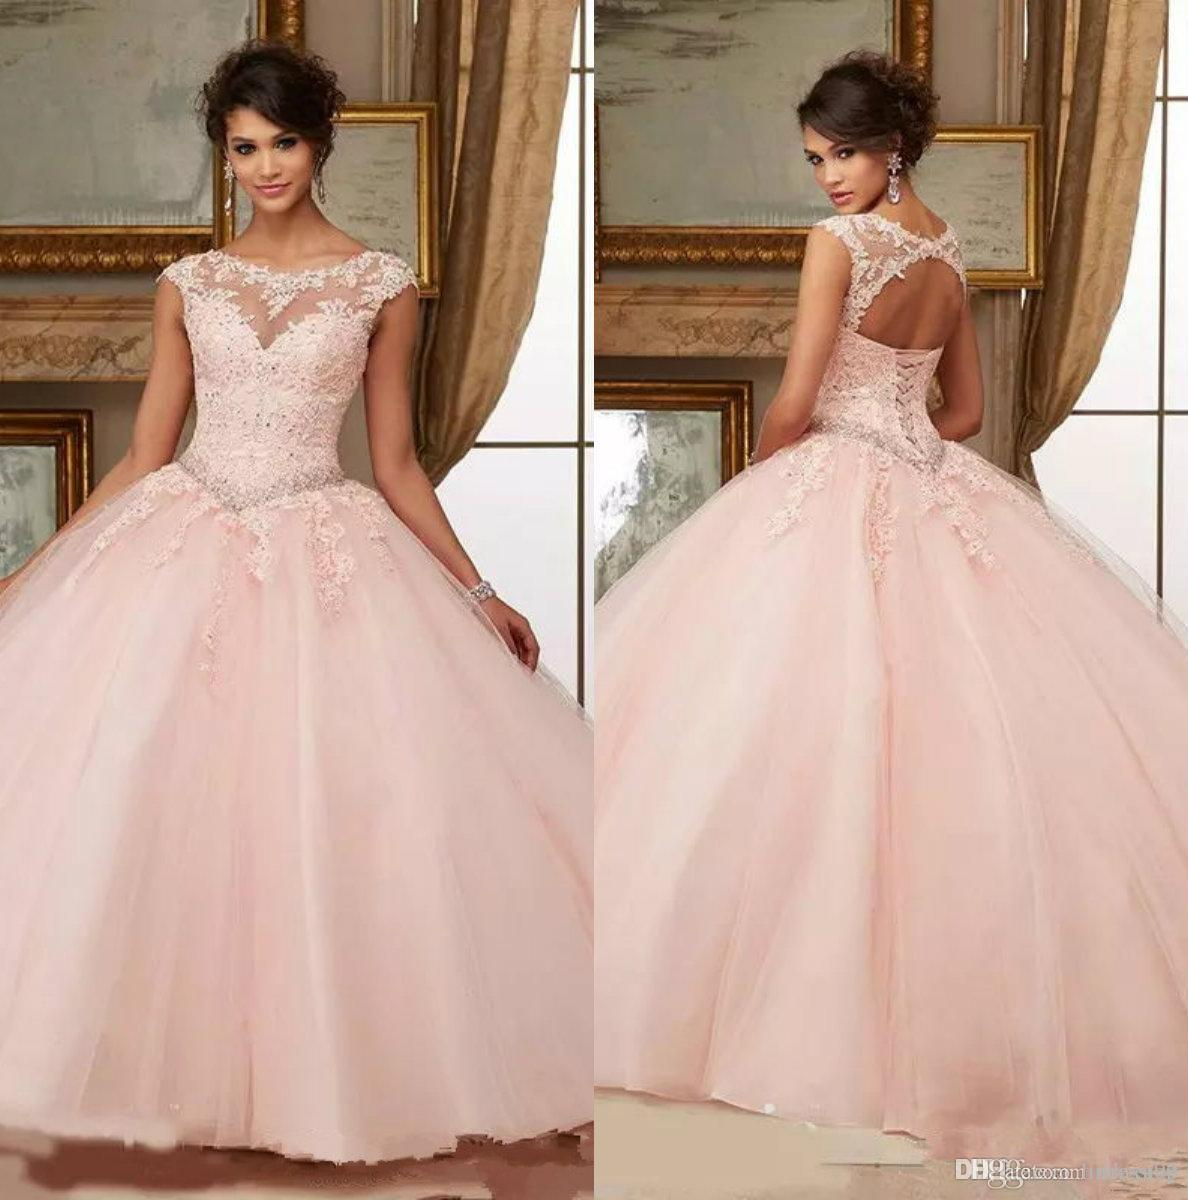 8afb3352b2a Pink Beaded 2018 Prom Dress Sheer High Neck Sweet 16 Masquerad ...